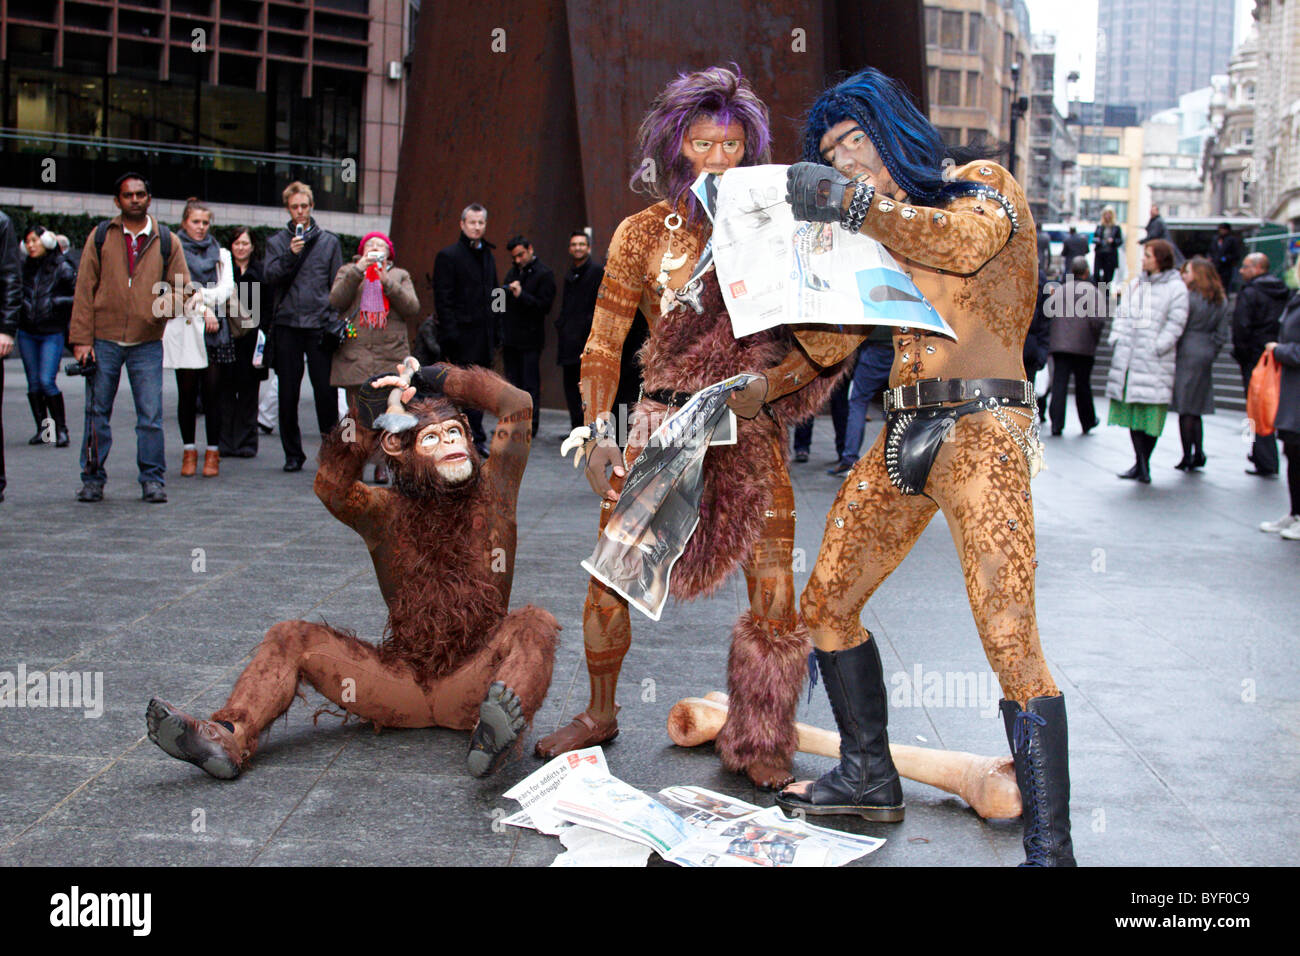 Cast members from Cirque du Soleil's Totem recreated Darwin's iconic evolution of man scene in Liverpool - Stock Image